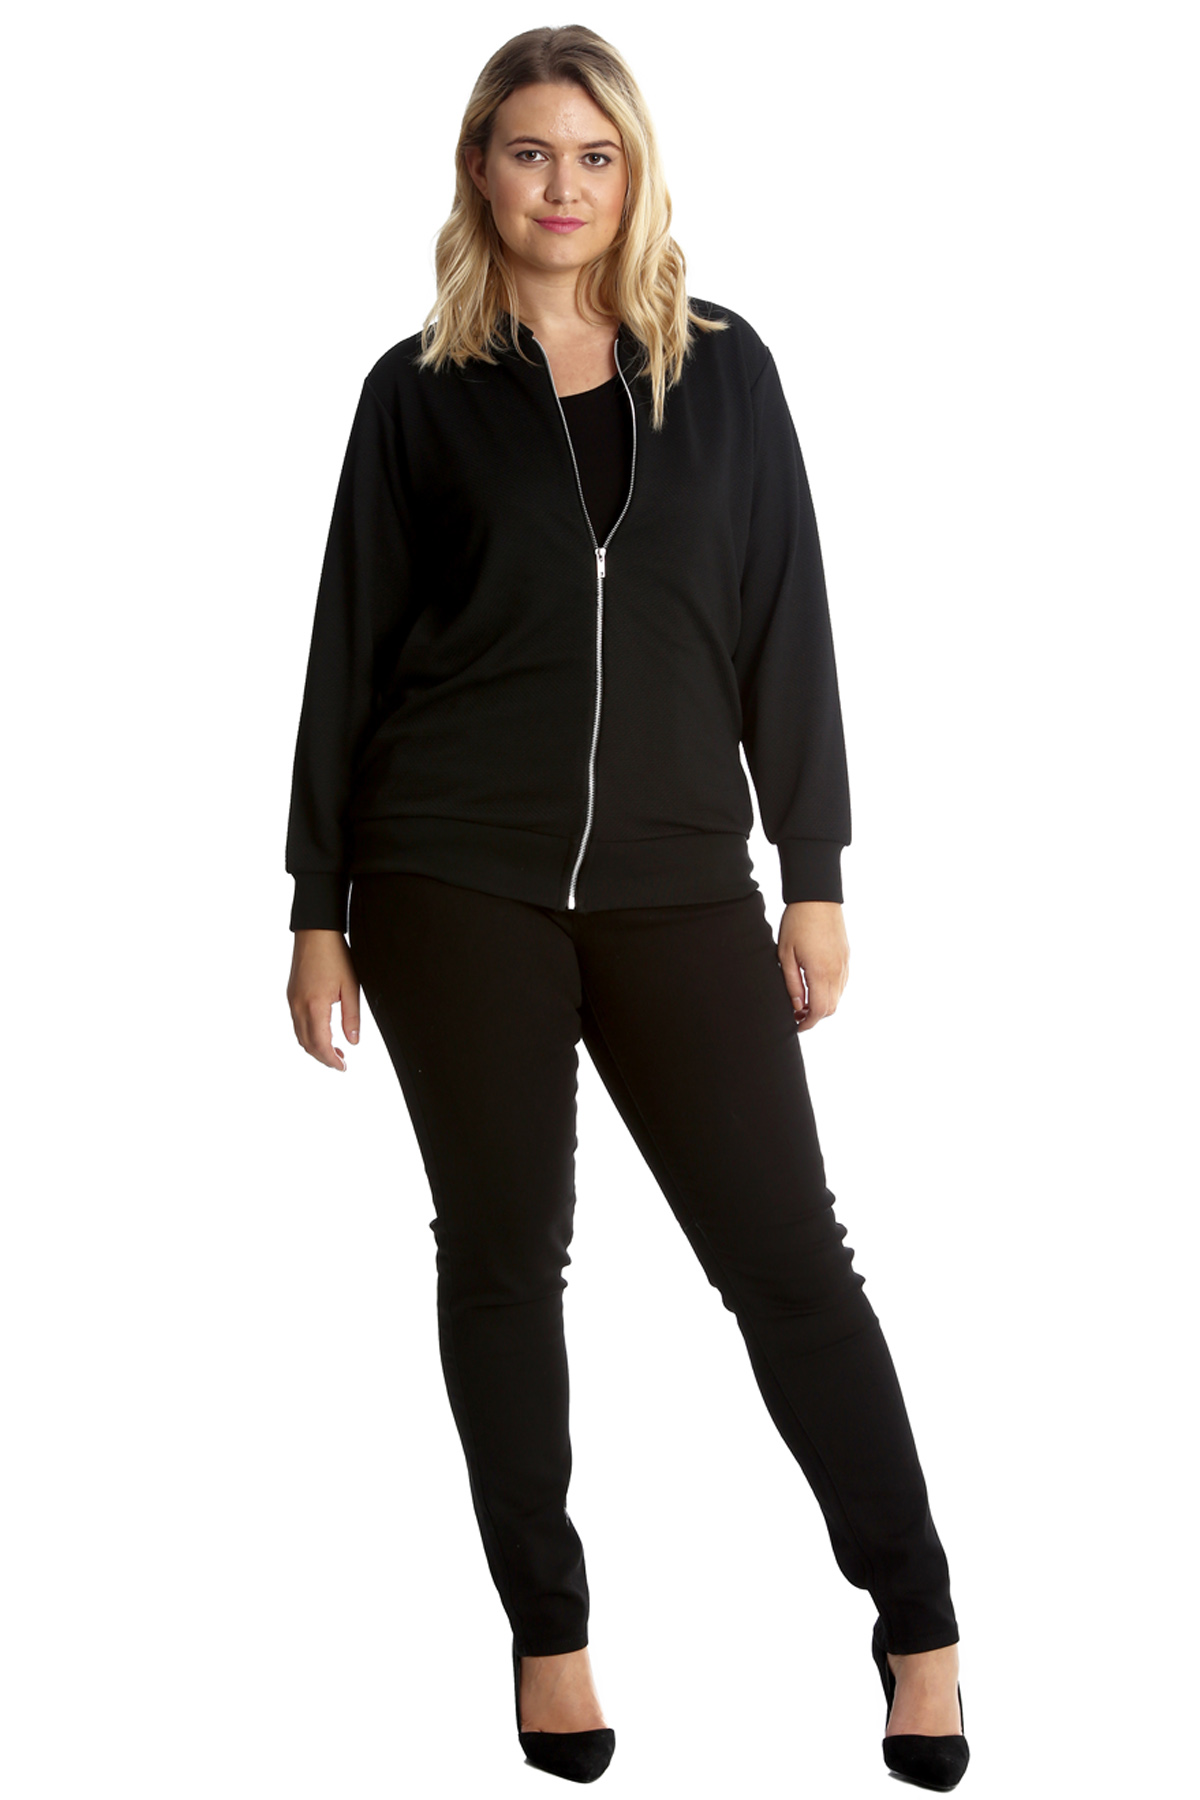 New Womens Plus Size Bomber Jacket Ladies Eiffel Tower ...